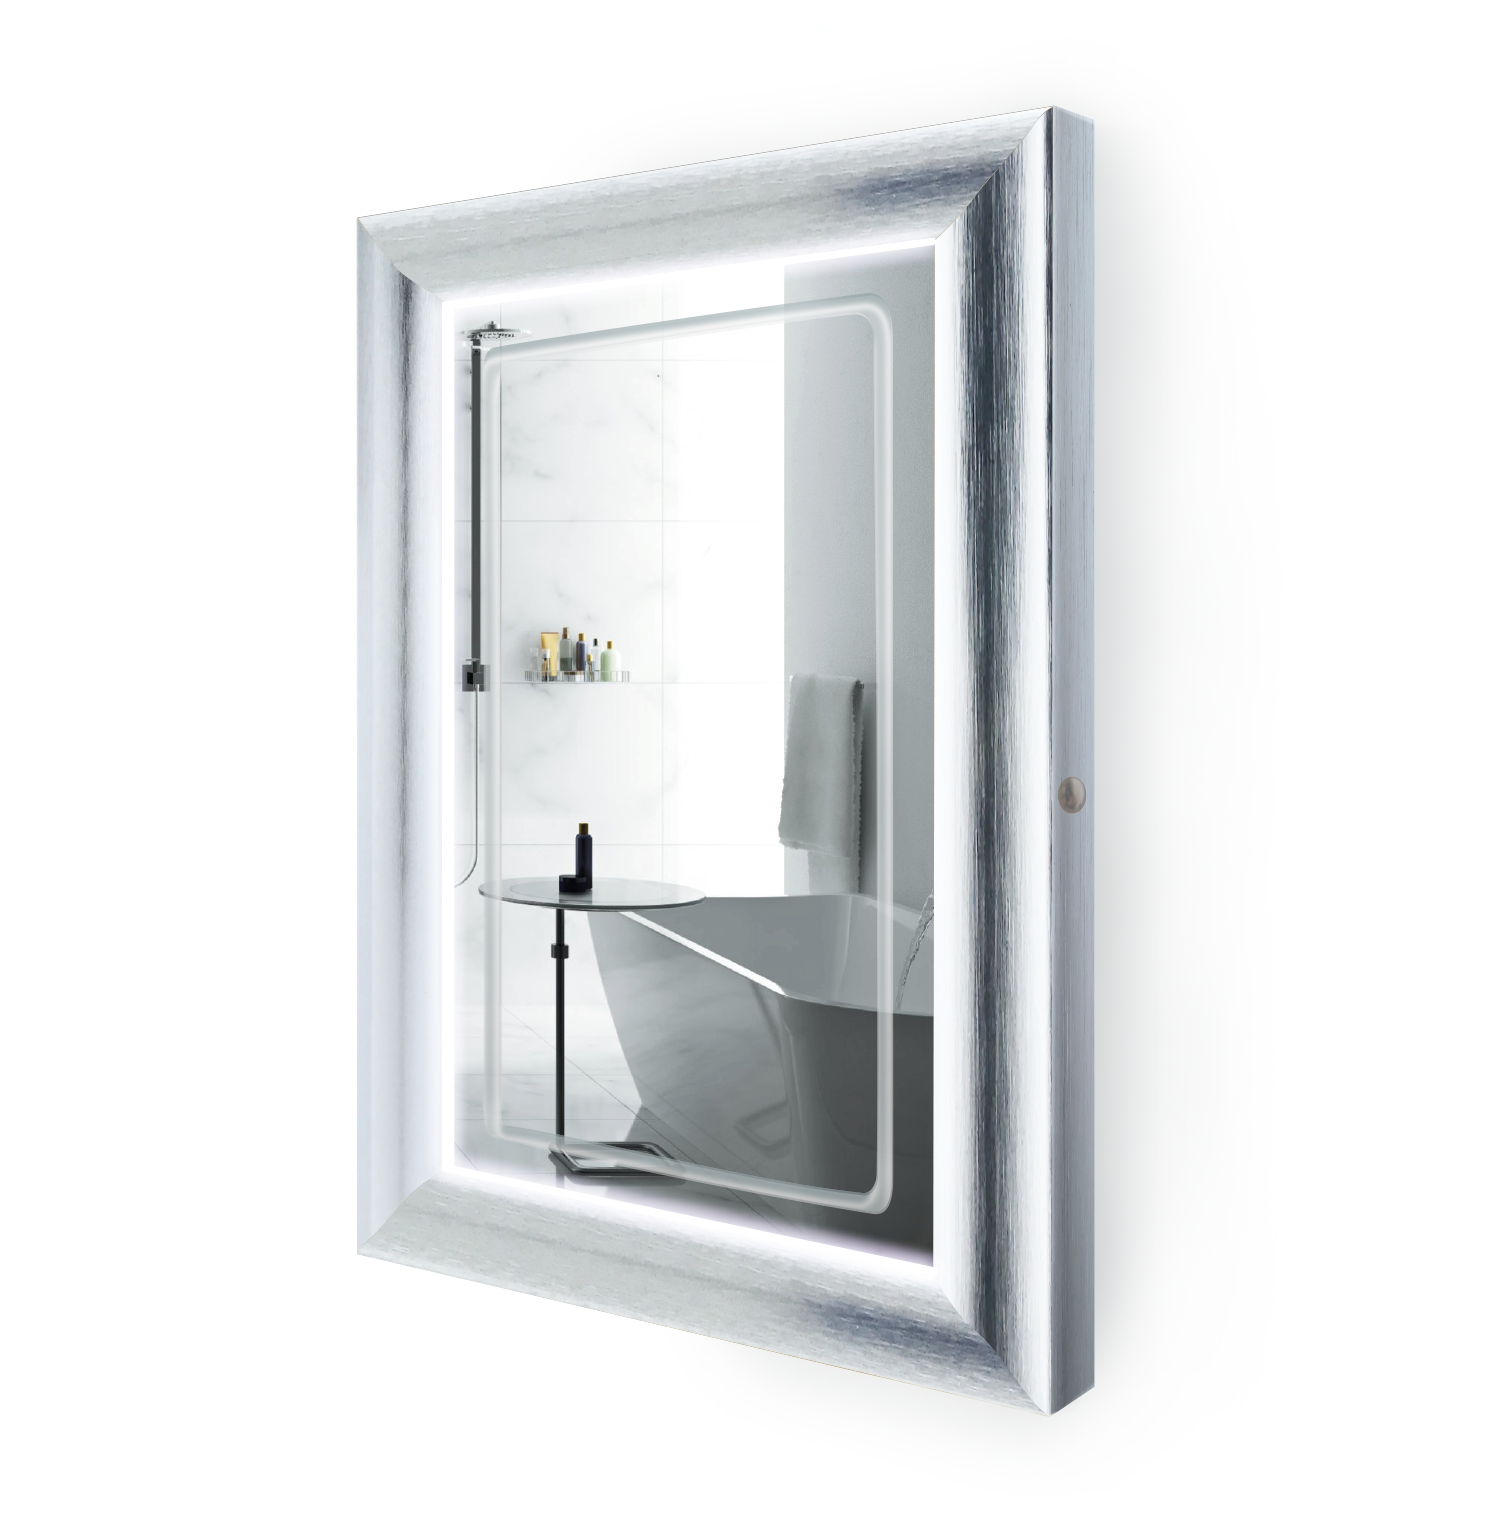 LED Lighted 24 Inch x 36 Inch Bathroom Silver Frame Mirror with Defogger